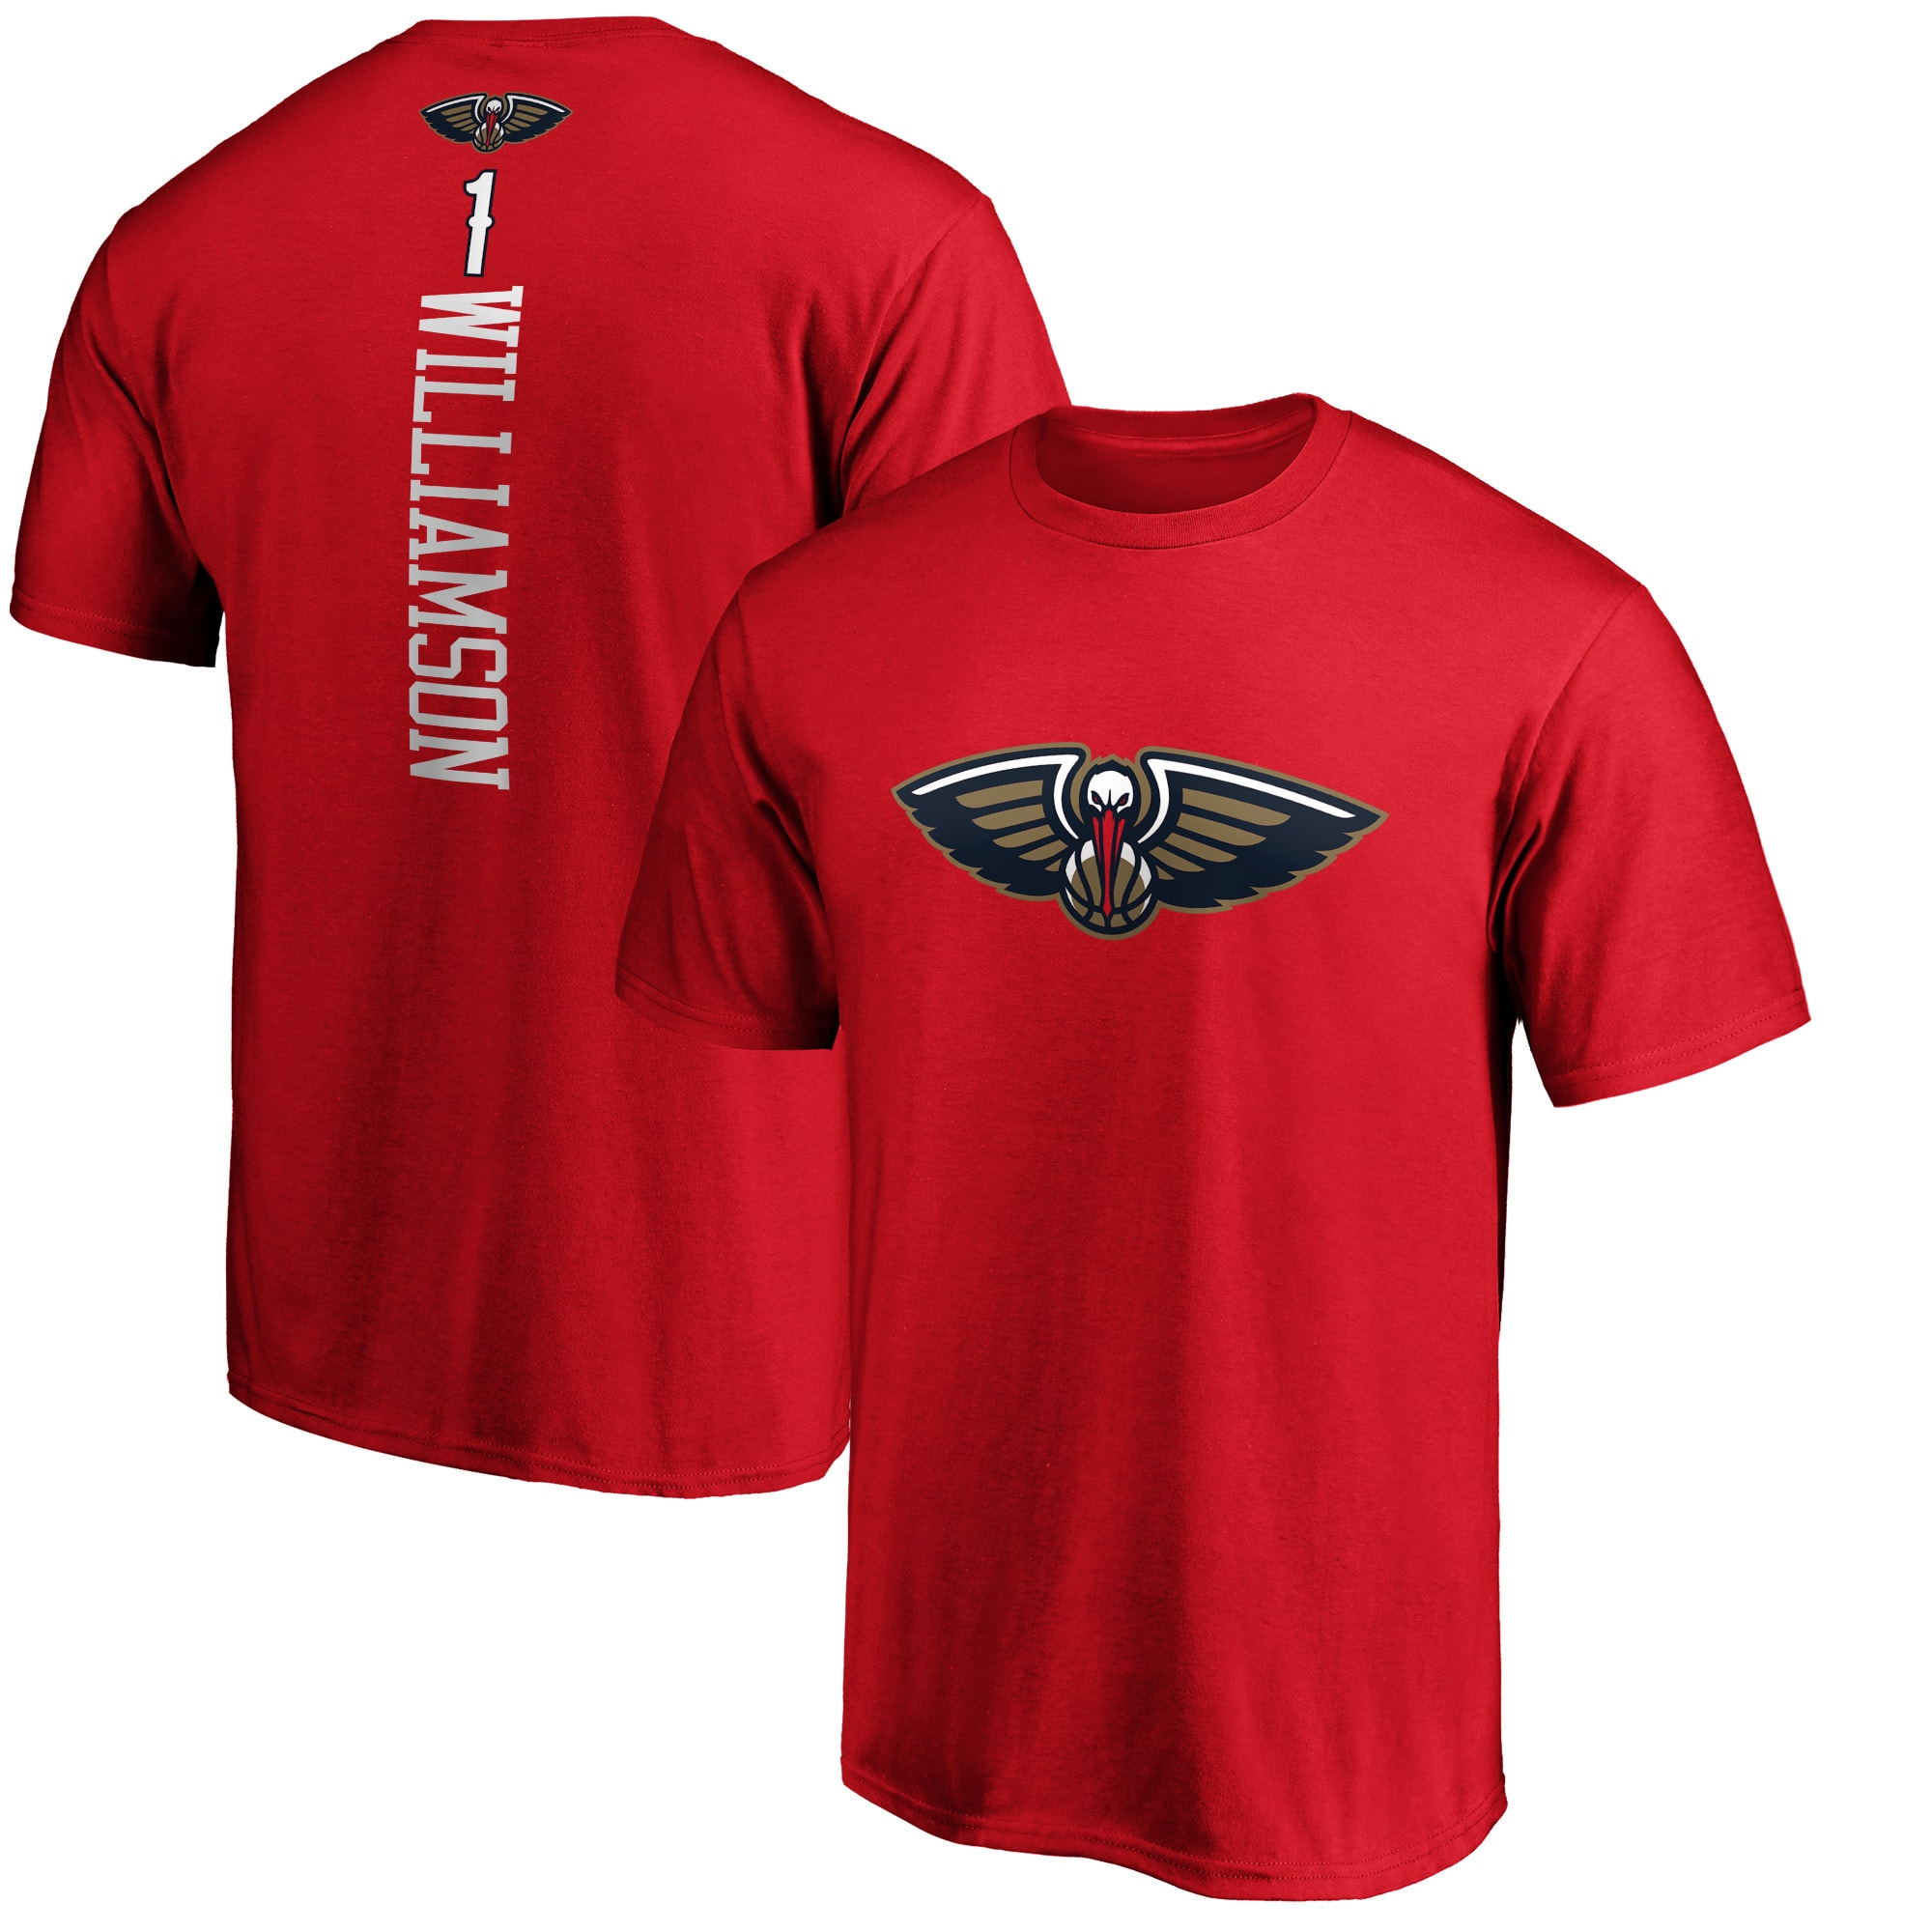 Zion Williamson New Orleans Pelicans Fanatics Branded Playmaker Name & Number Team T-Shirt - Red